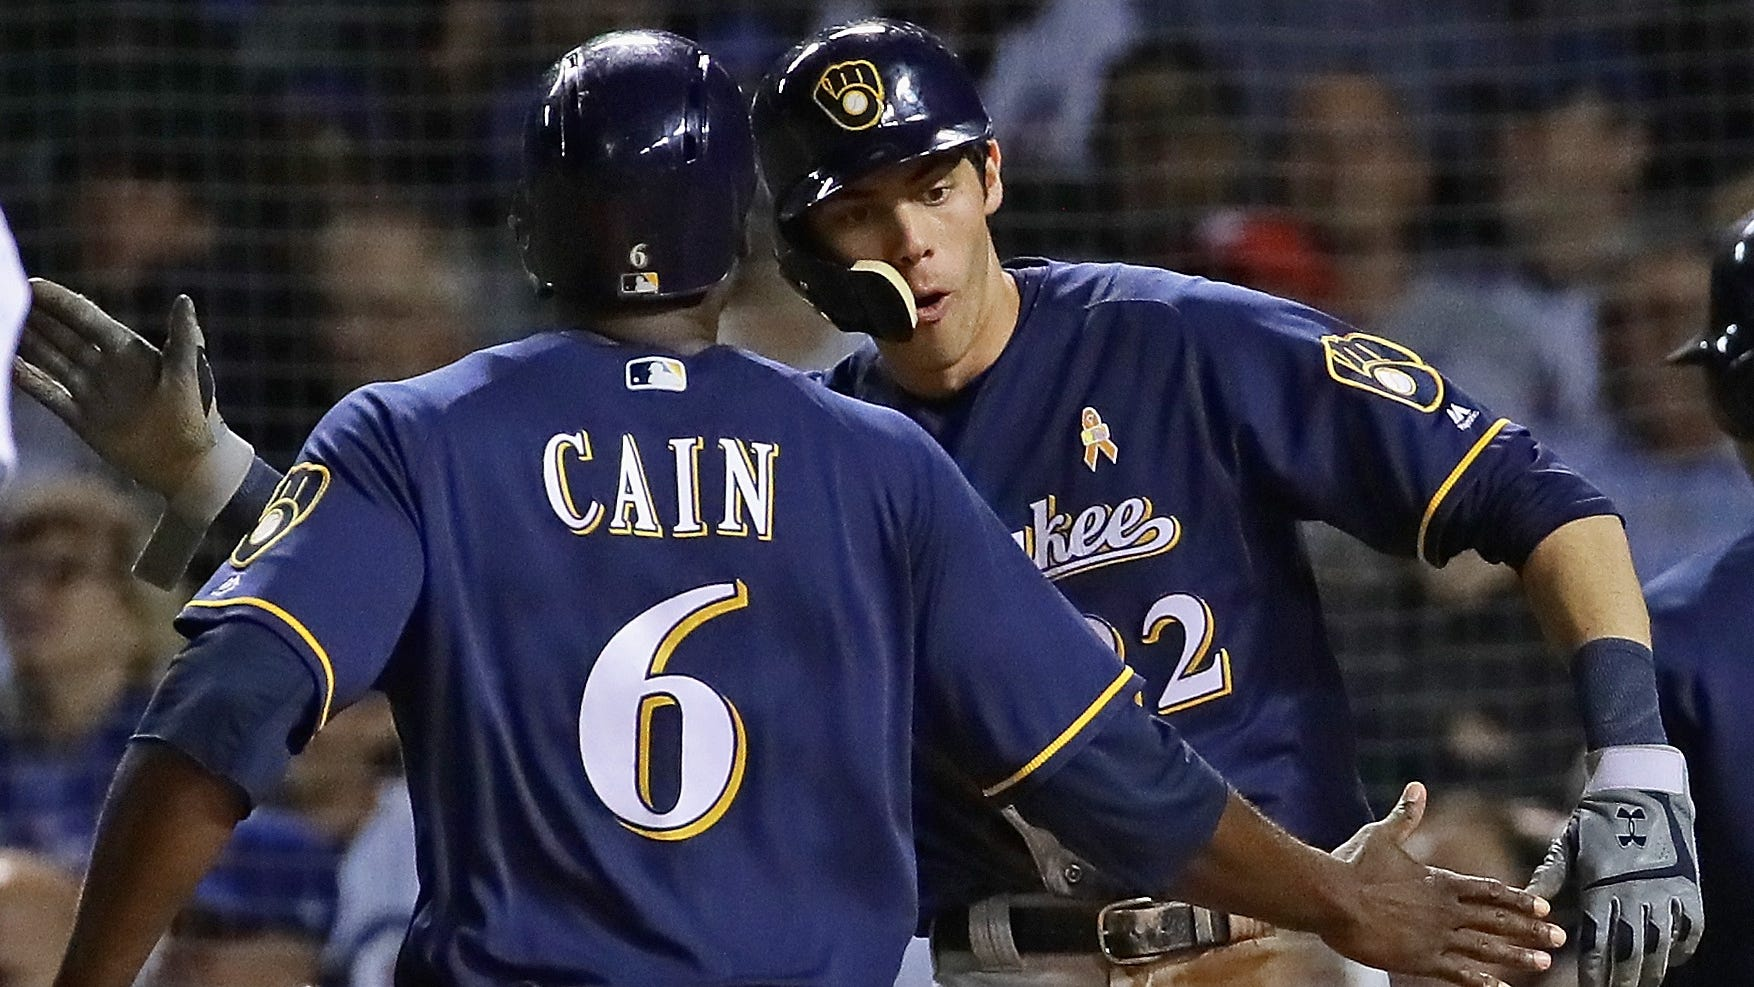 Haudricourt: Jan. 25 was a day that changed Brewers' present and future course